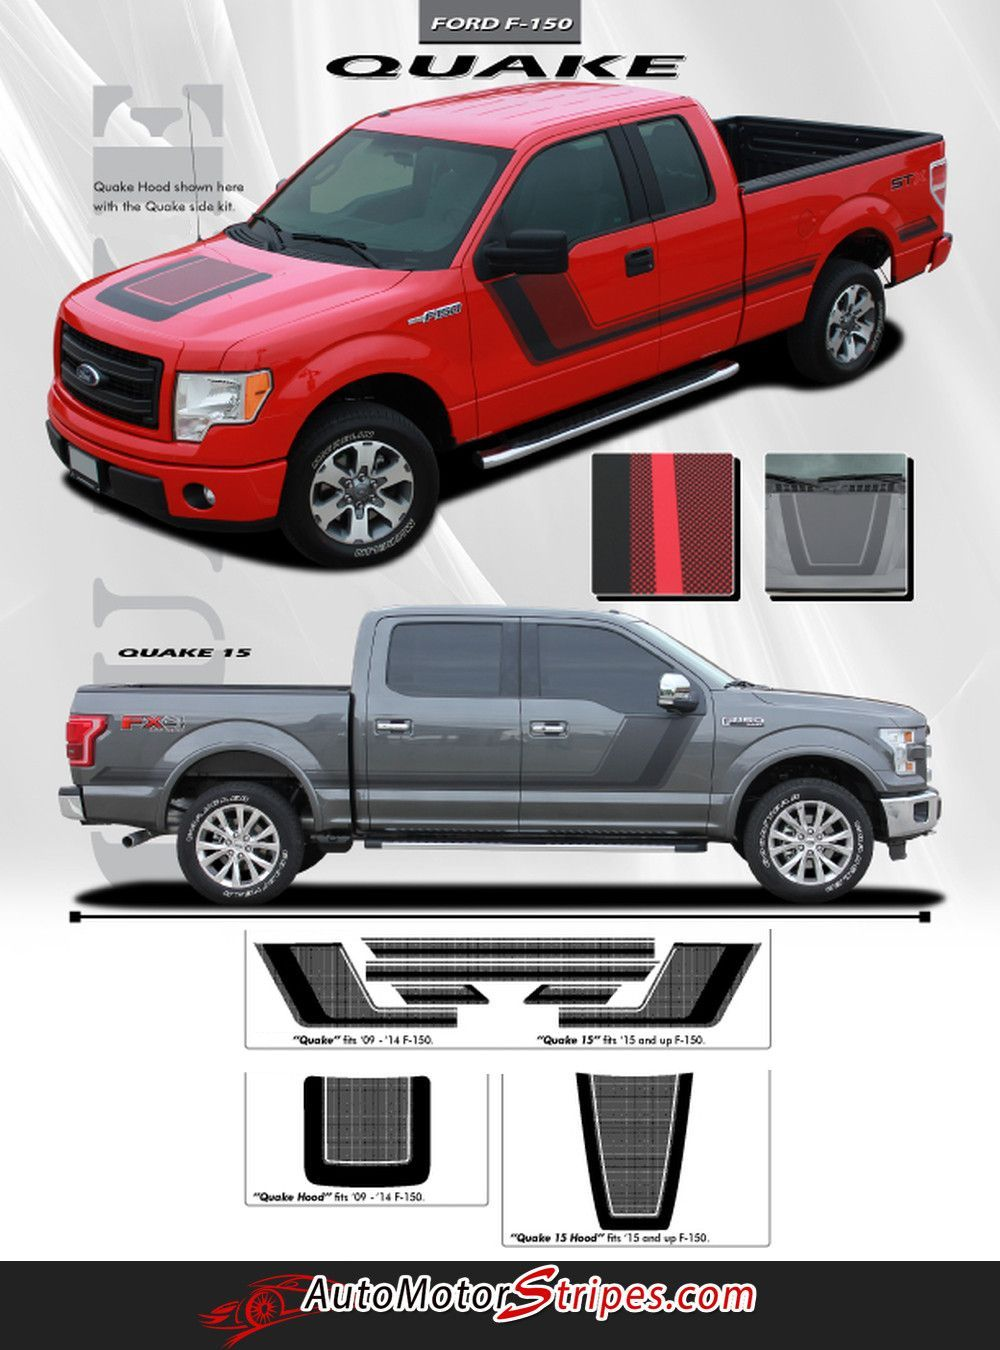 hight resolution of vehicle specific style ford f 150 series truck quake combo hood and sides tremor fx style vinyl graphic stripe decals year fitment 2009 2010 2011 2012 2013